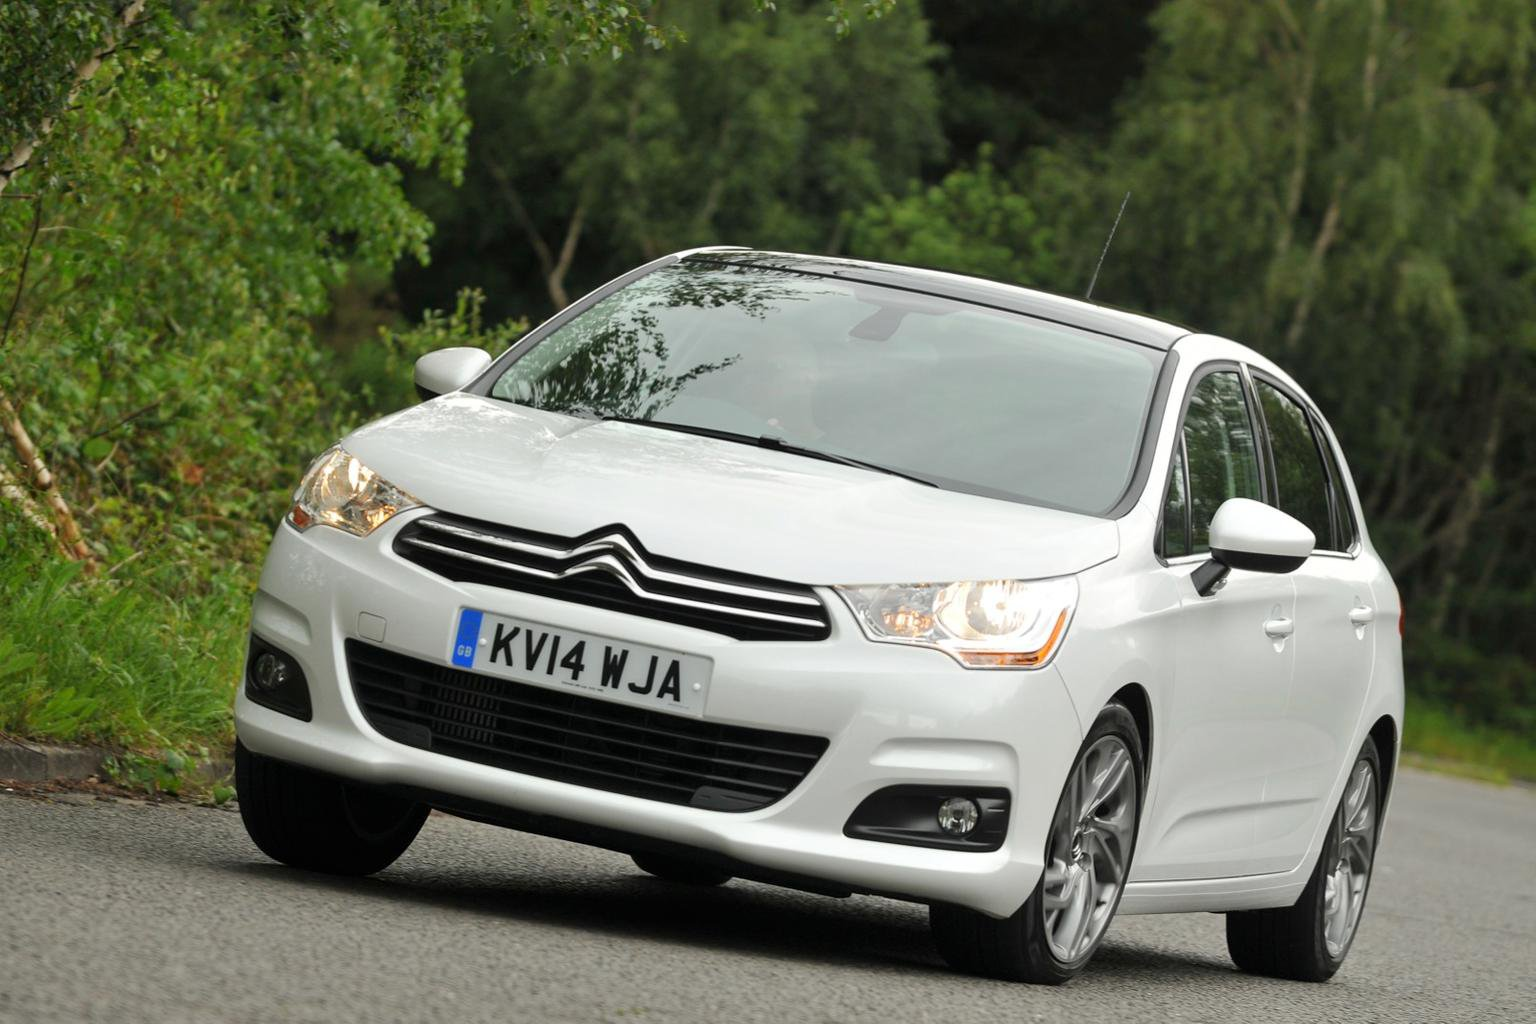 2014 Citroen C4 e-THP 130 review - updated